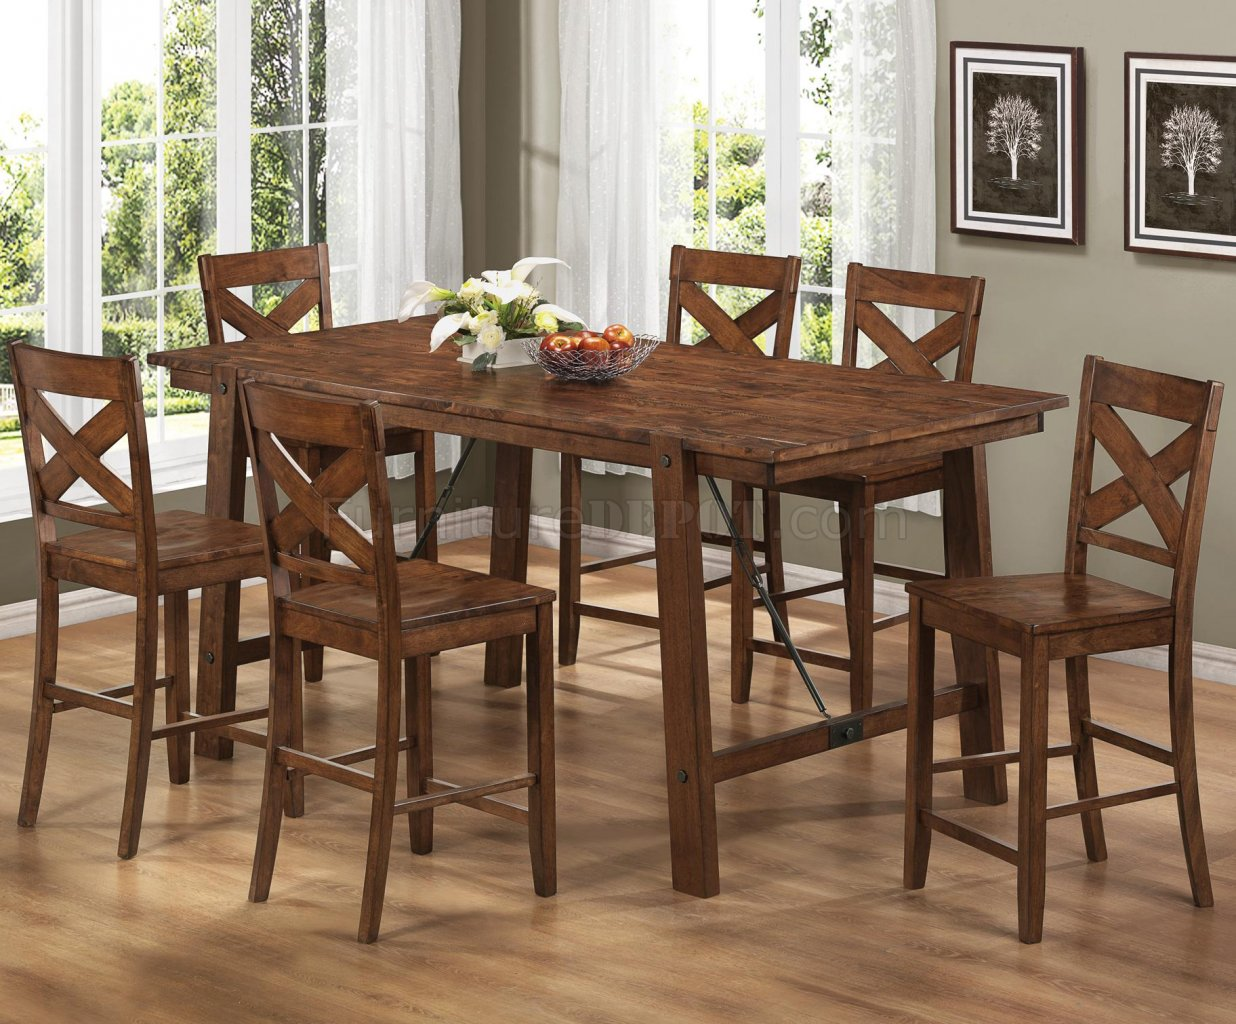 lawson counter height dining table by coaster woptions p counter height kitchen tables